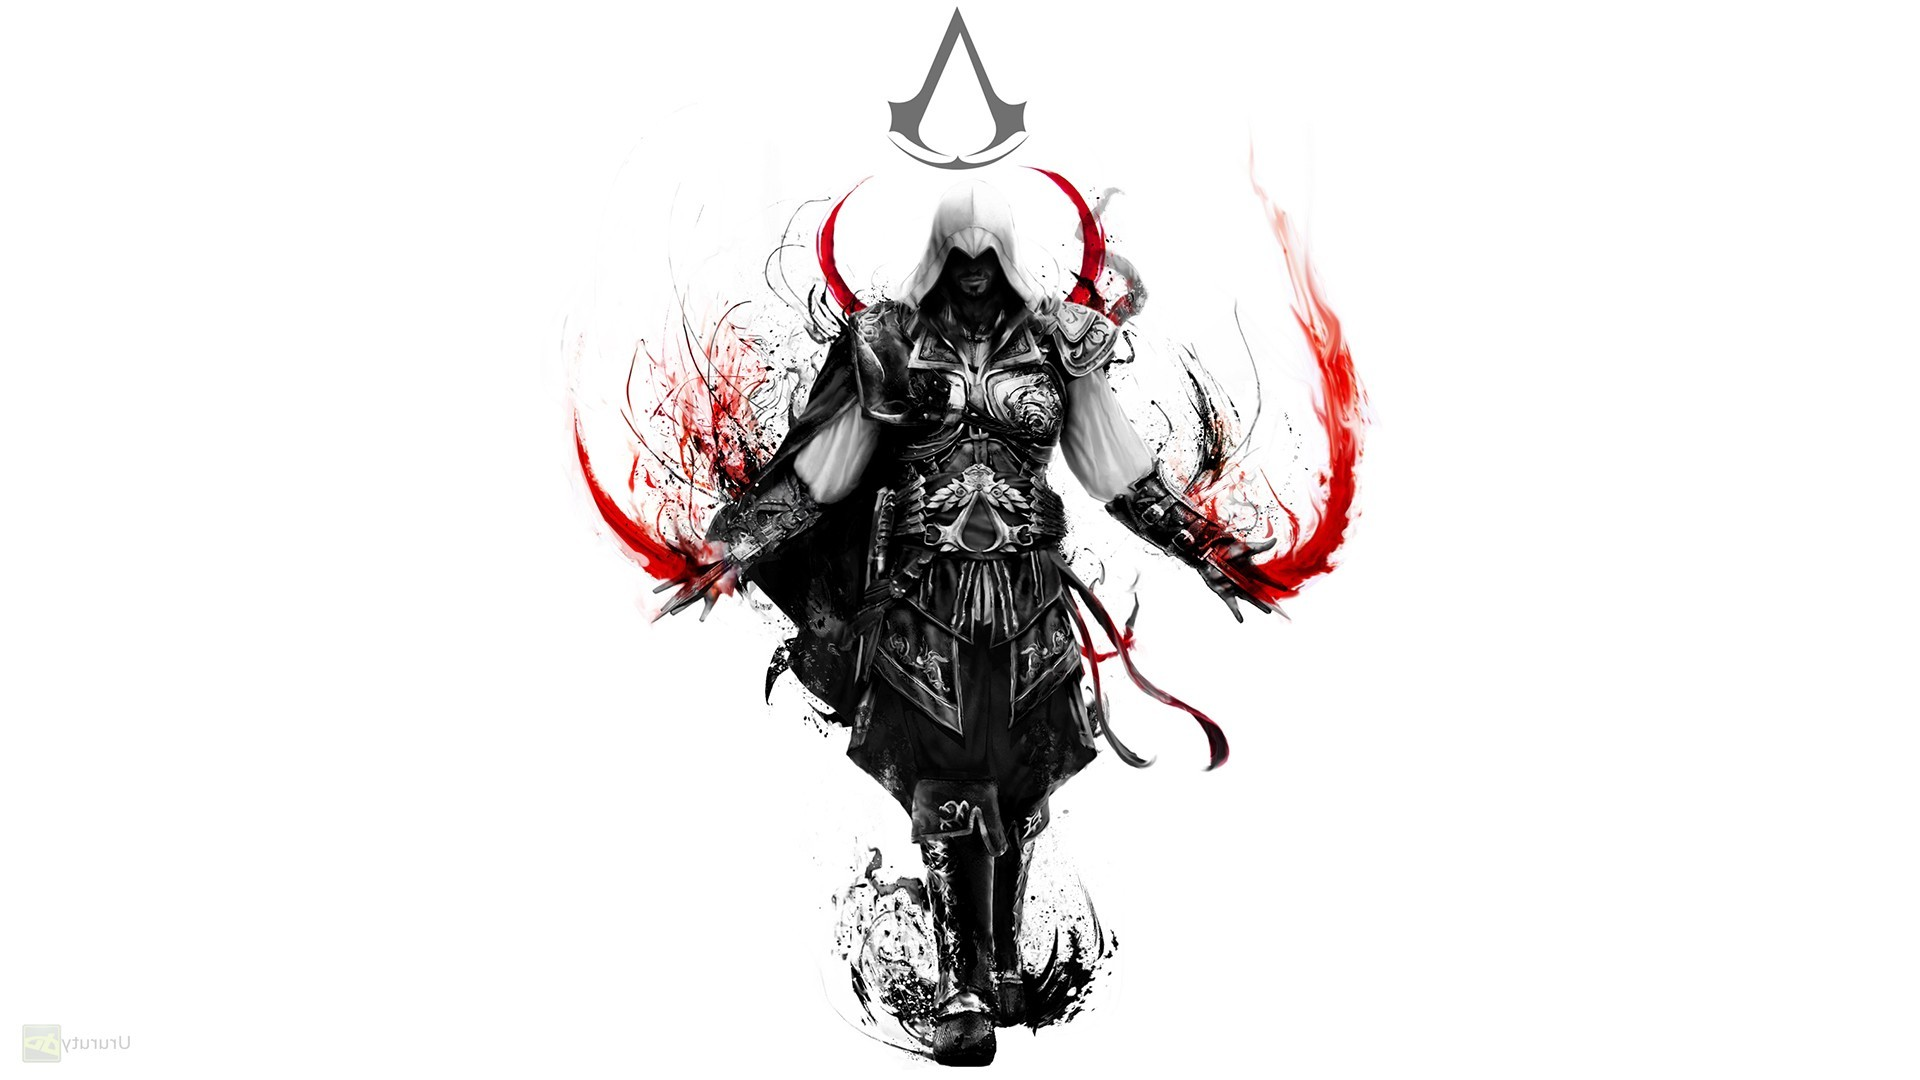 3d Unity Live Wallpaper Video Games Assassins Creed Brotherhood Wallpapers Hd